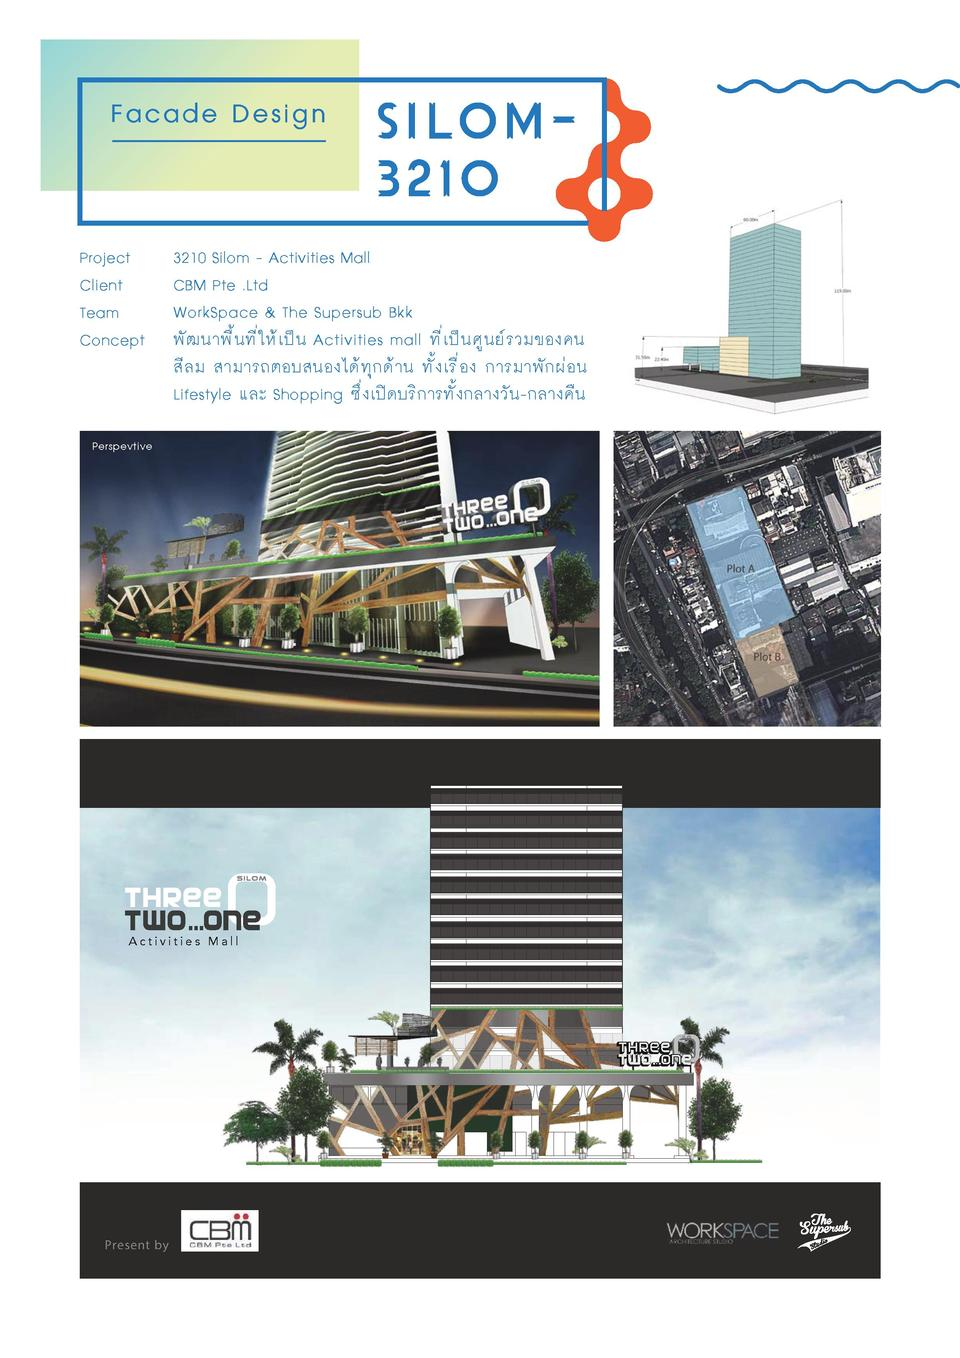 Facade Design  Project Client Team Concept  3210 Silom - Activities Mall CBM Pte .Ltd WorkSpace   The Supersub Bkk        ...